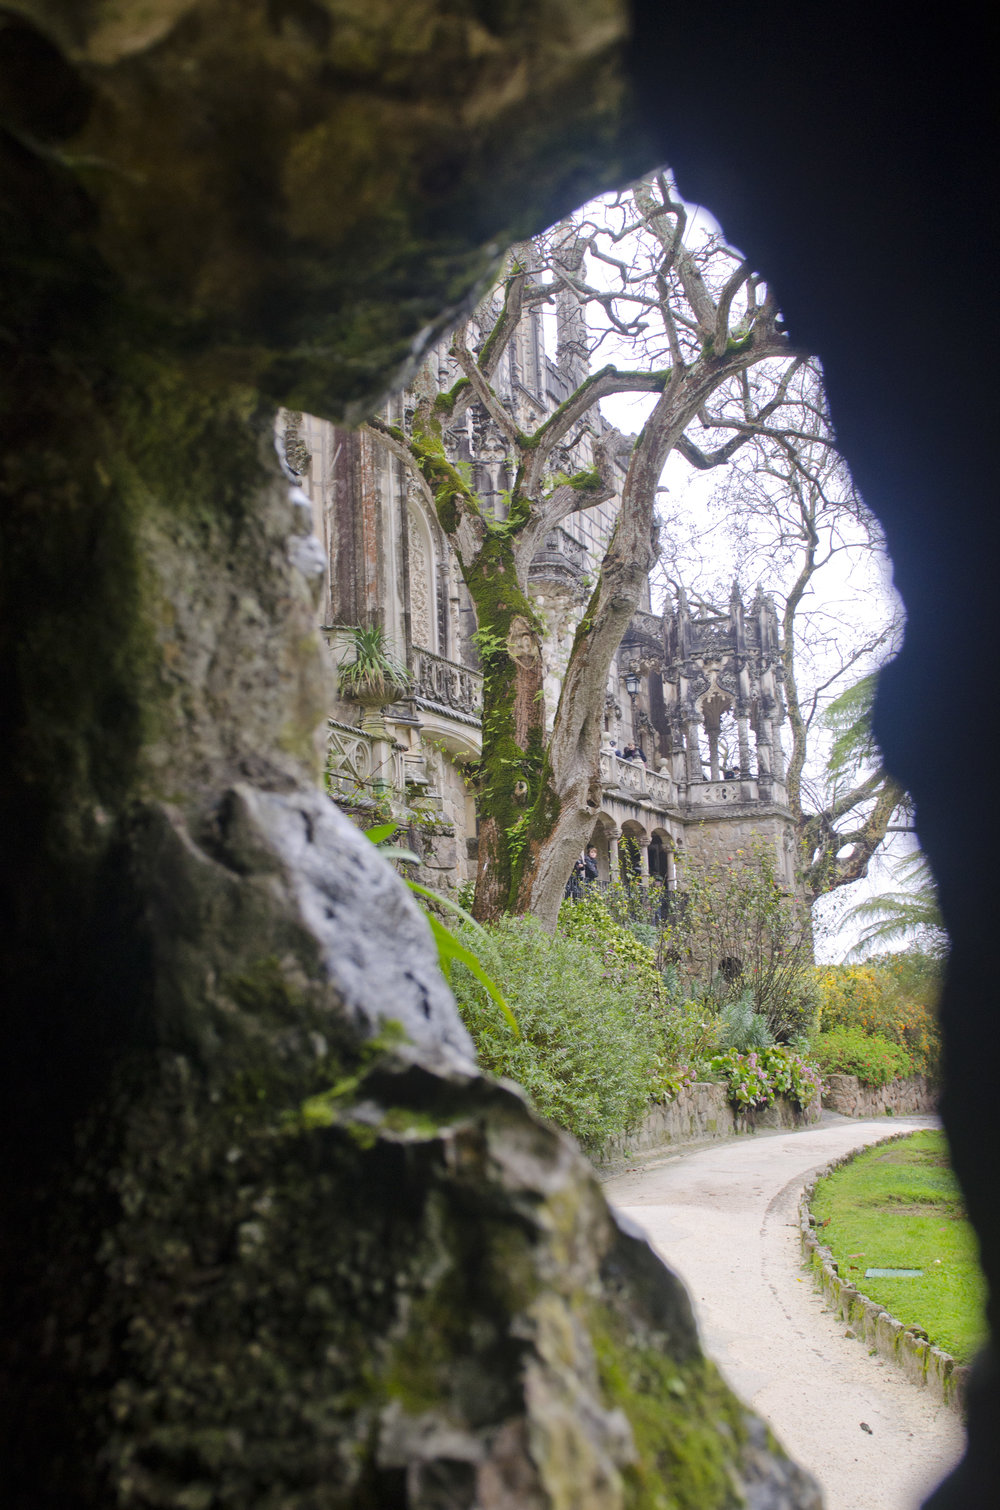 A glimpse of the main house from the walkway below the chapel